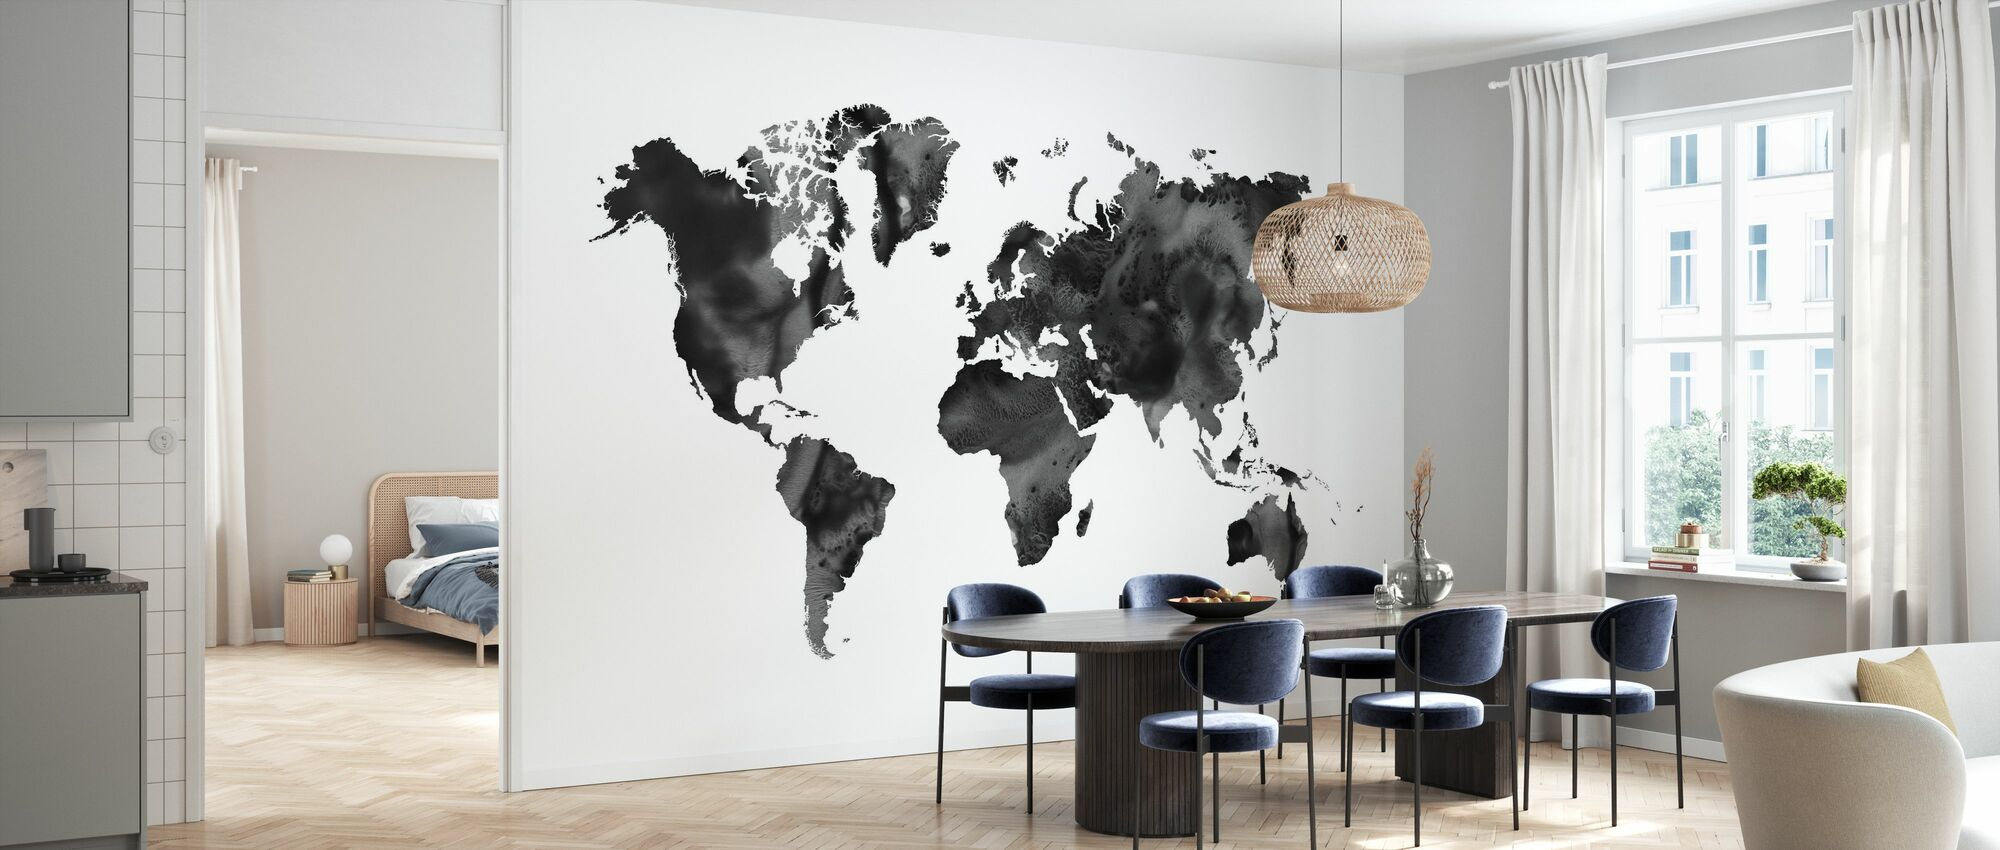 Watercolor World Map Black - Wallpaper - Kitchen